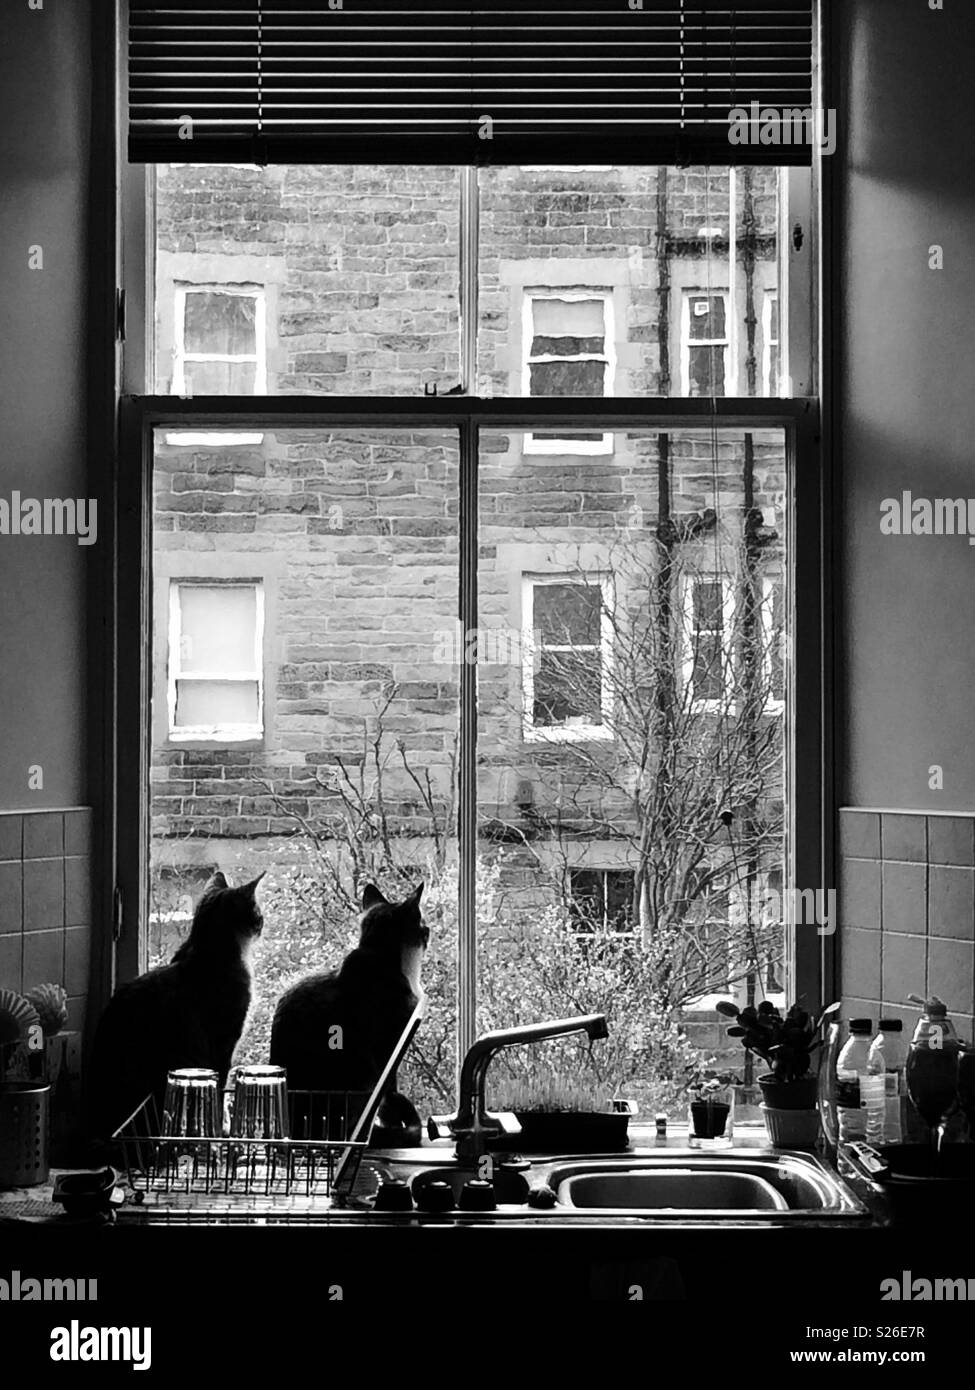 Two cats sitting at the kitchen window looking out into the garden. - Stock Image